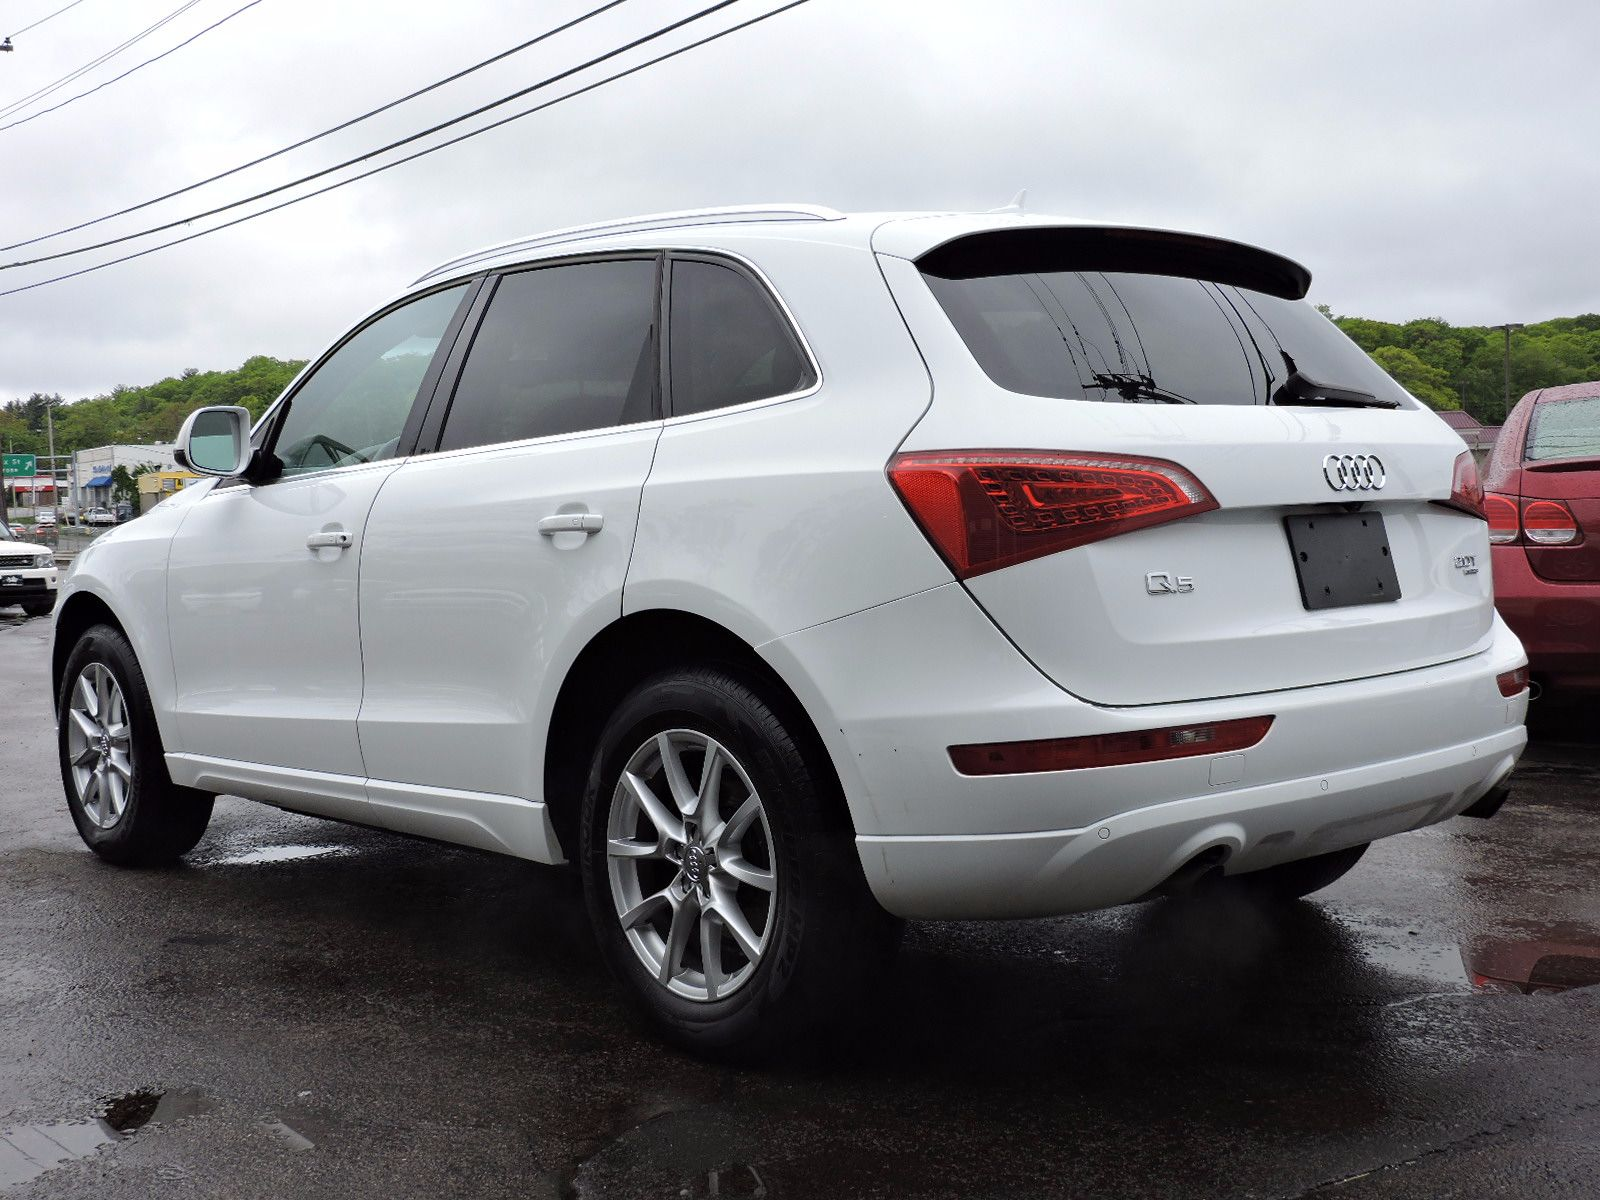 2011 Audi Q5 2.0T - Quattro - All Wheel Drive - Navigation